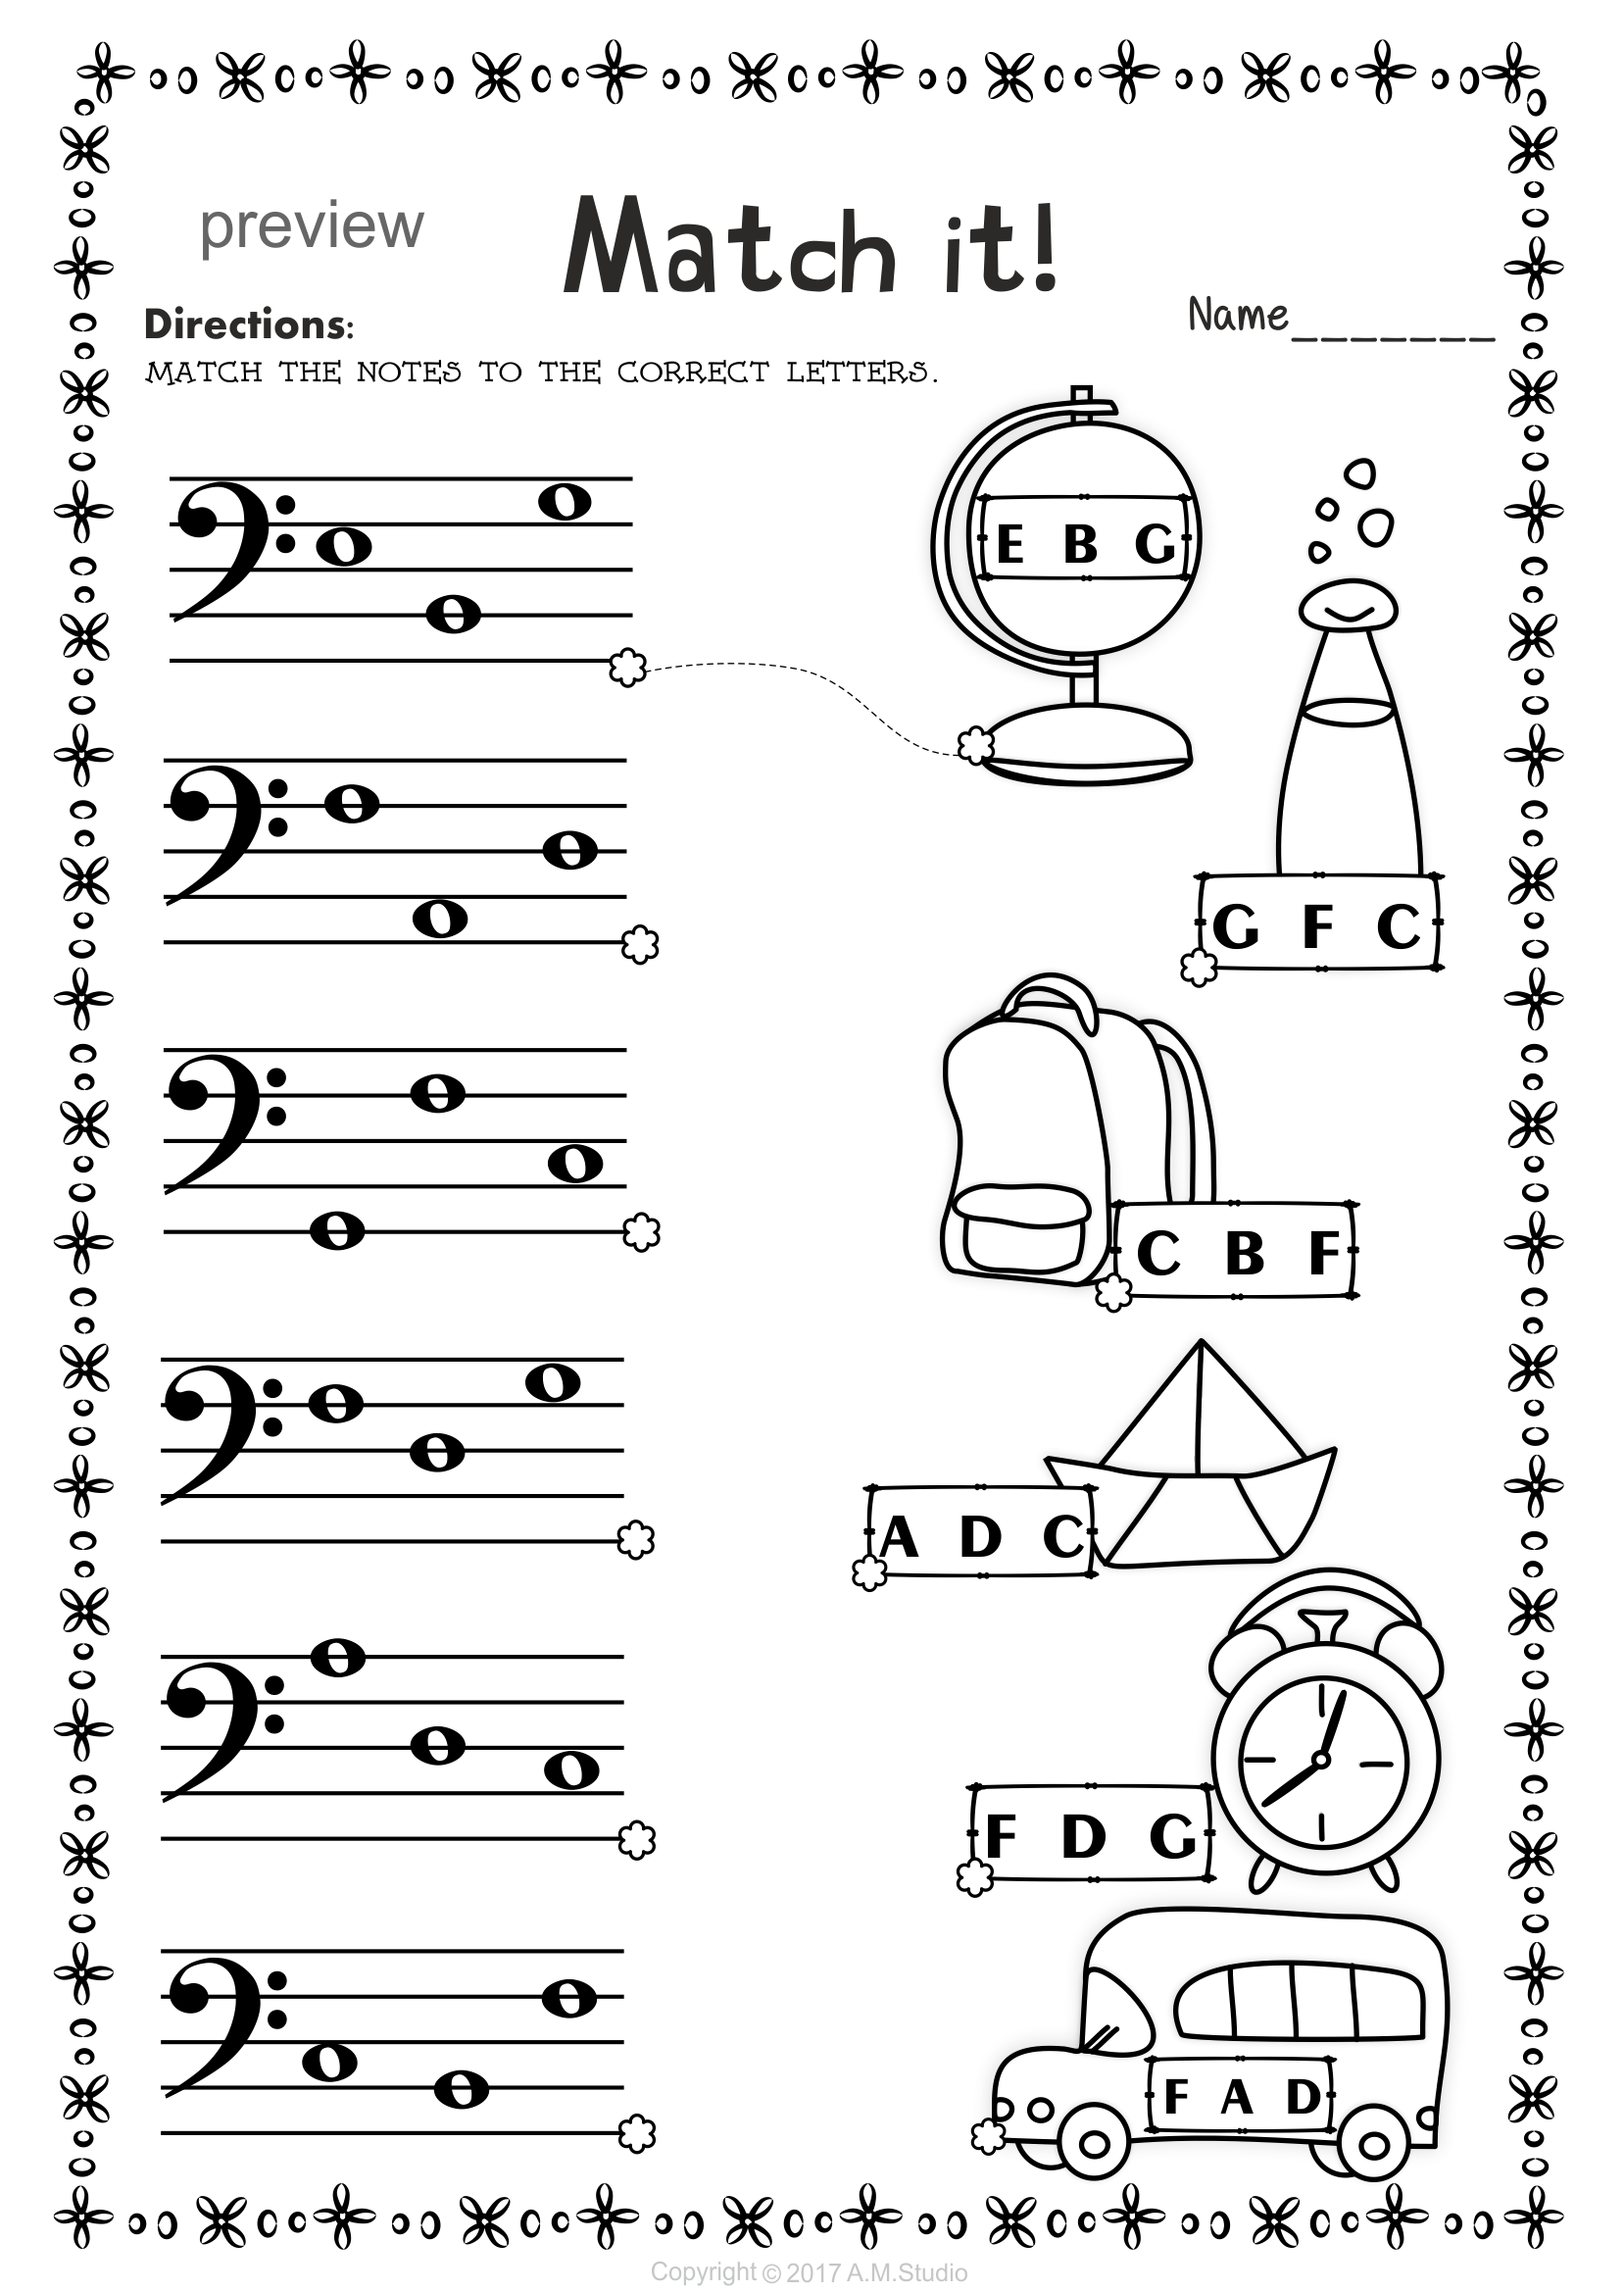 Bass Clef Note Names Topsimages